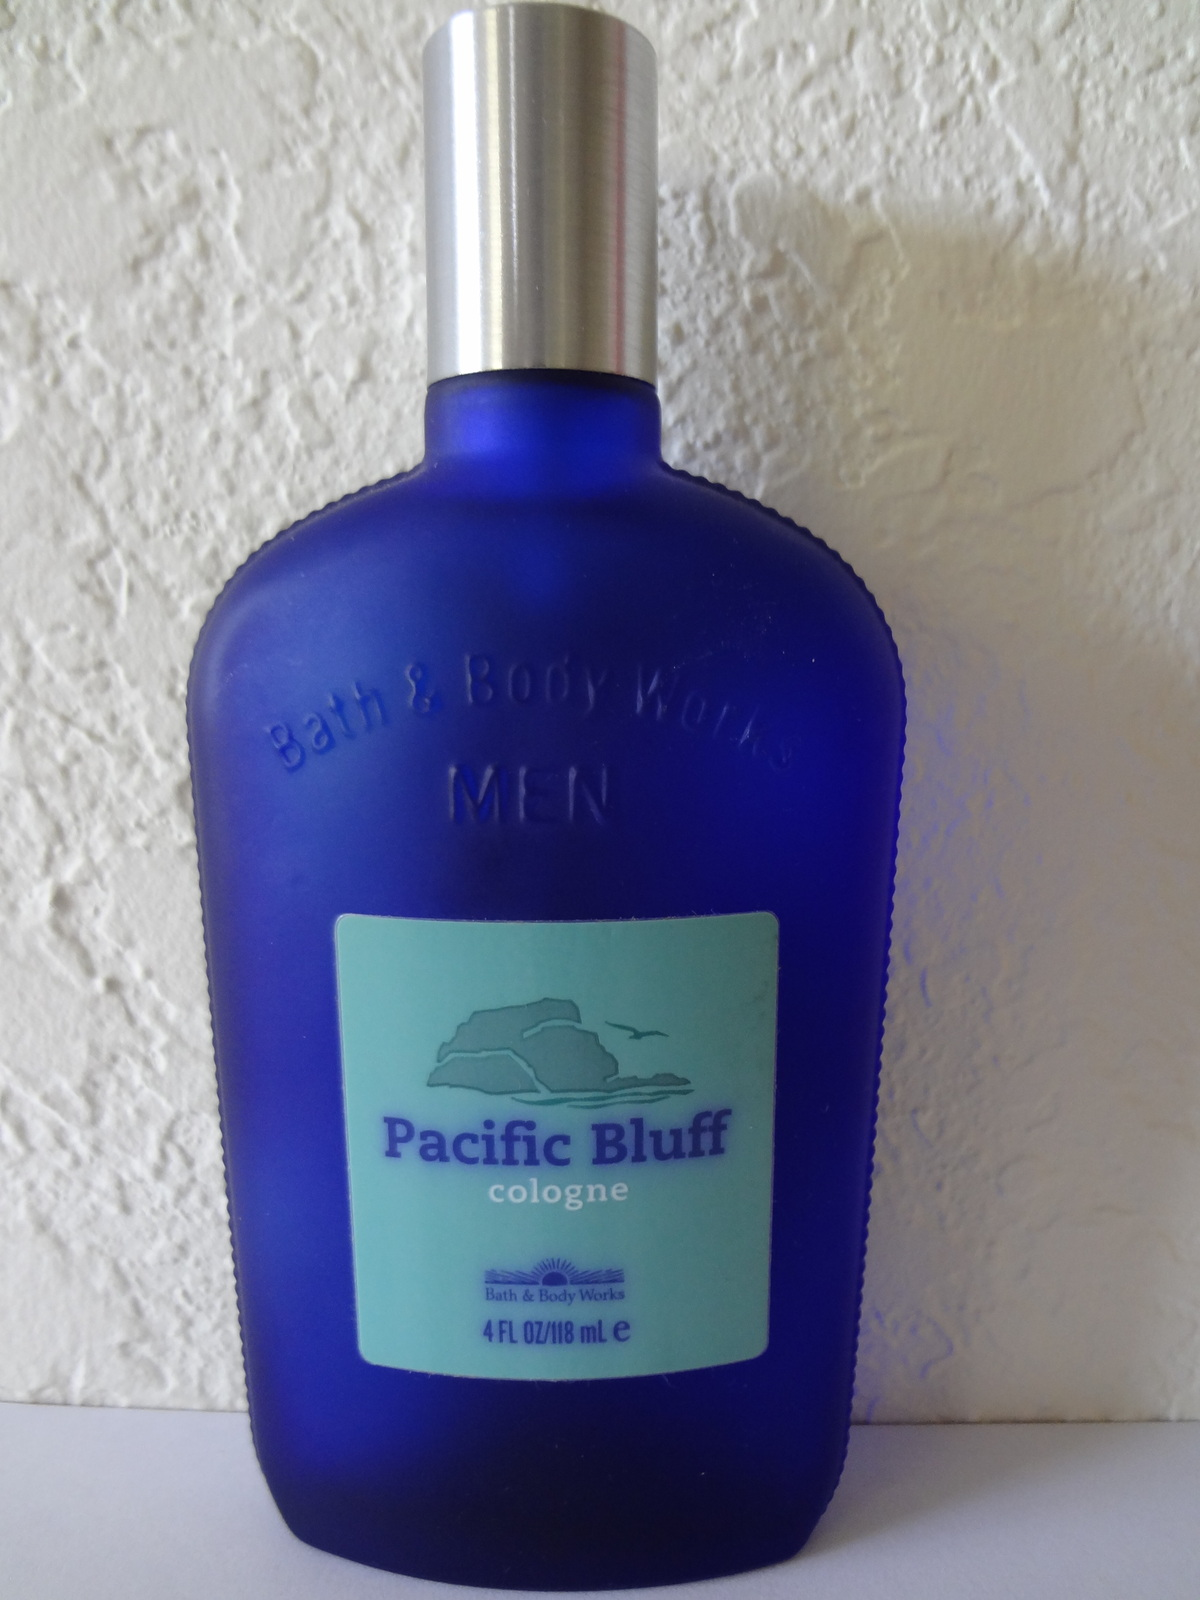 Bath & Body Works Men PACIFIC BLUFF Cologne 4 fl oz / 118 ml